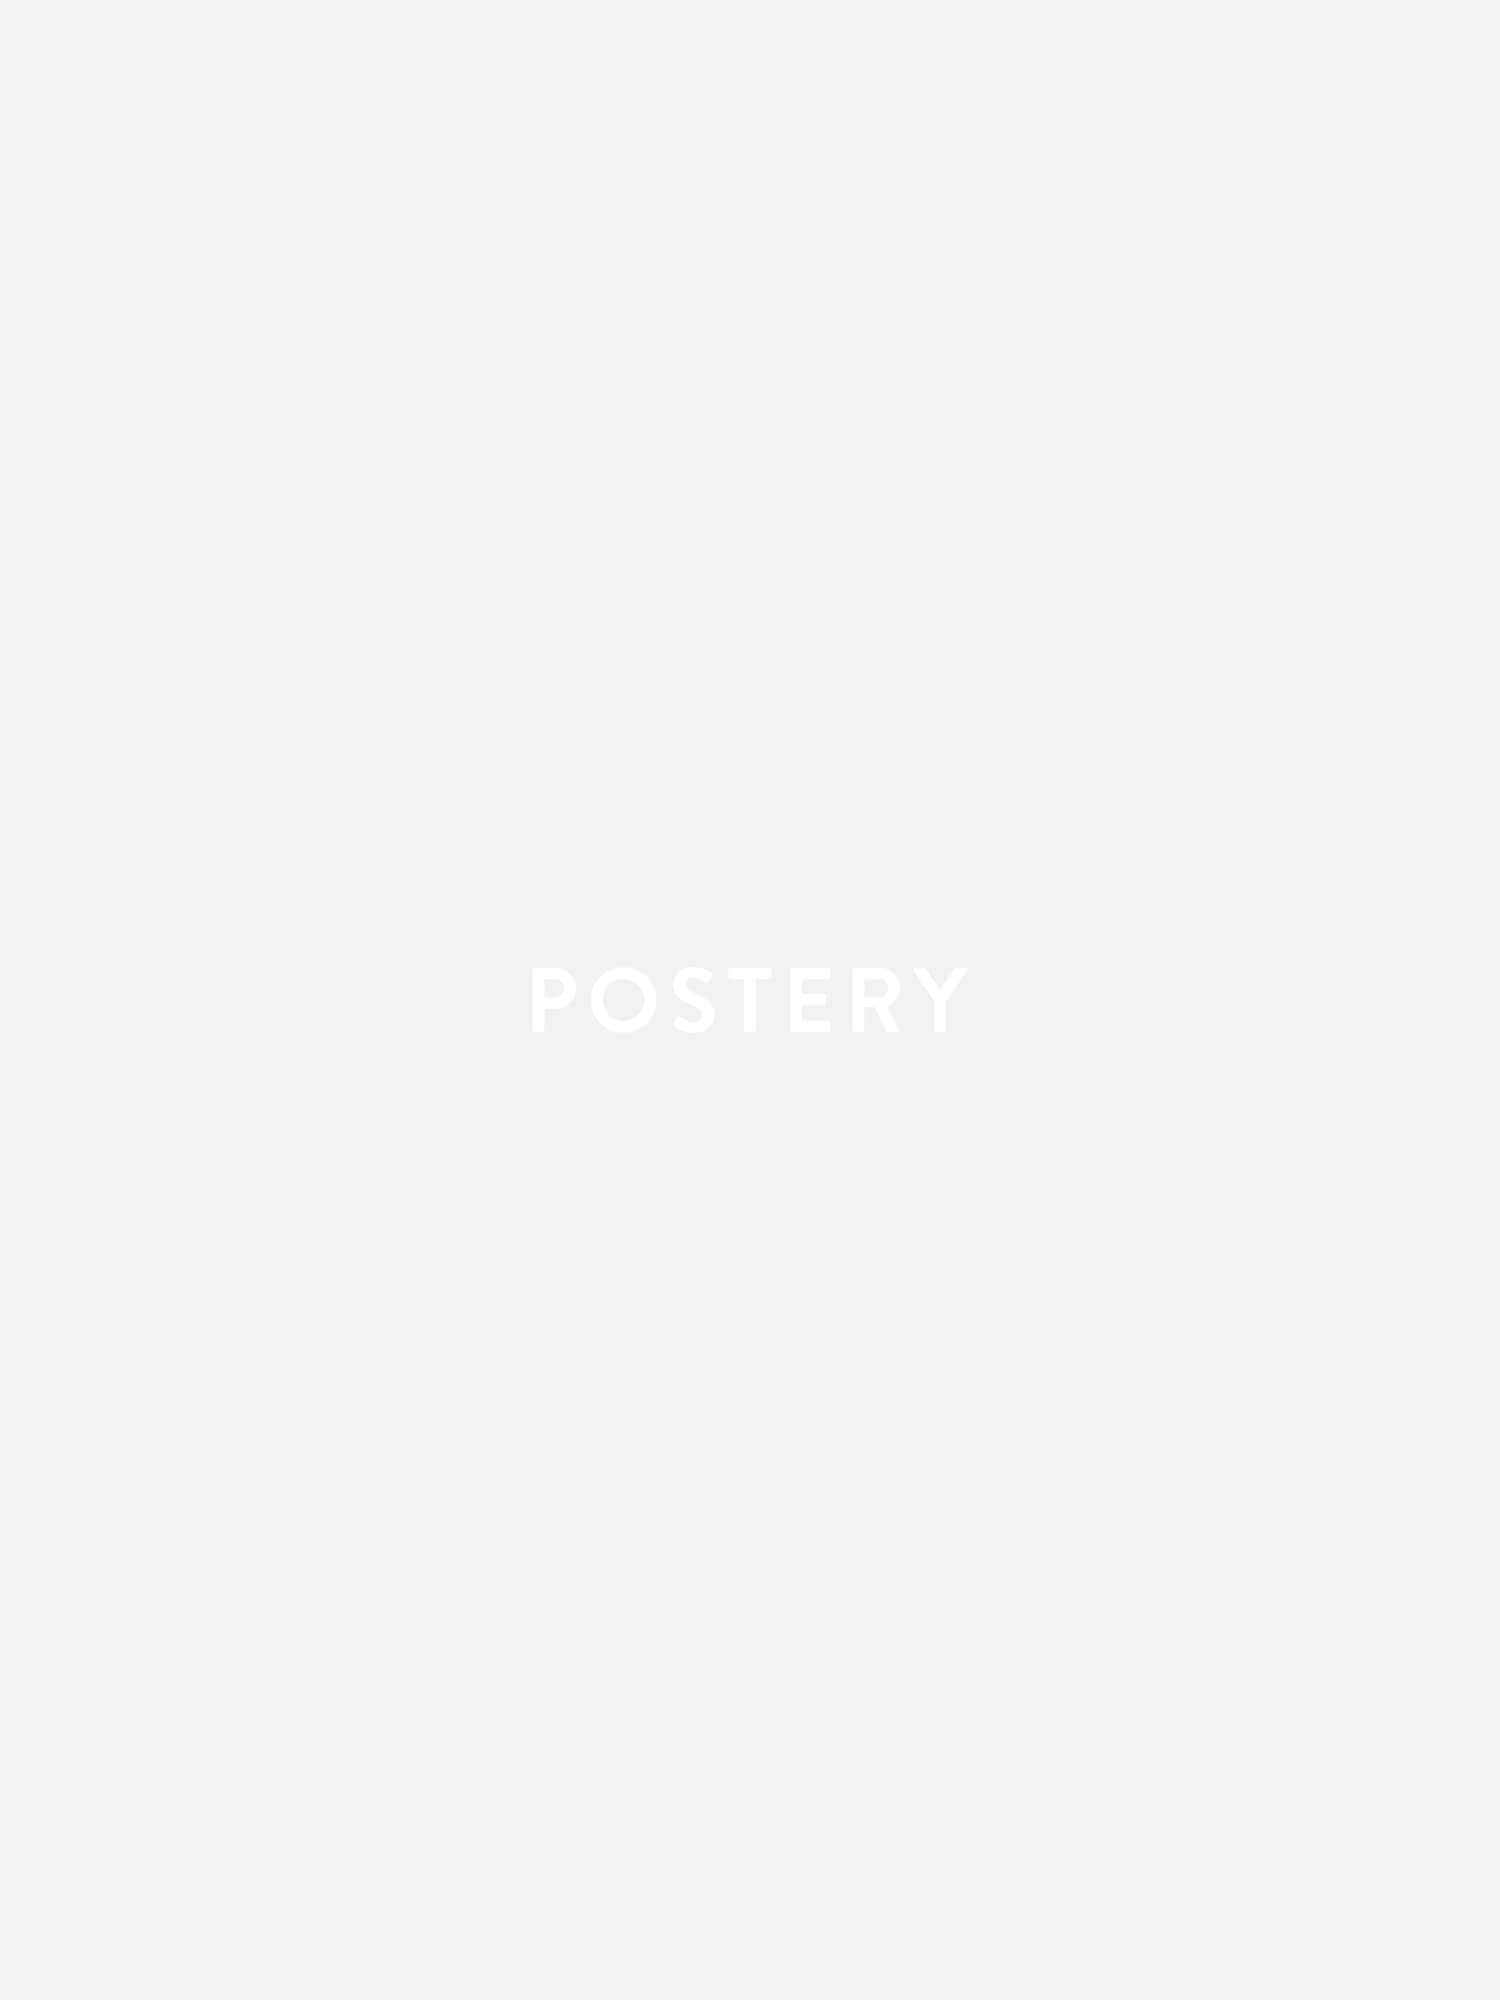 Octopus Arms Poster